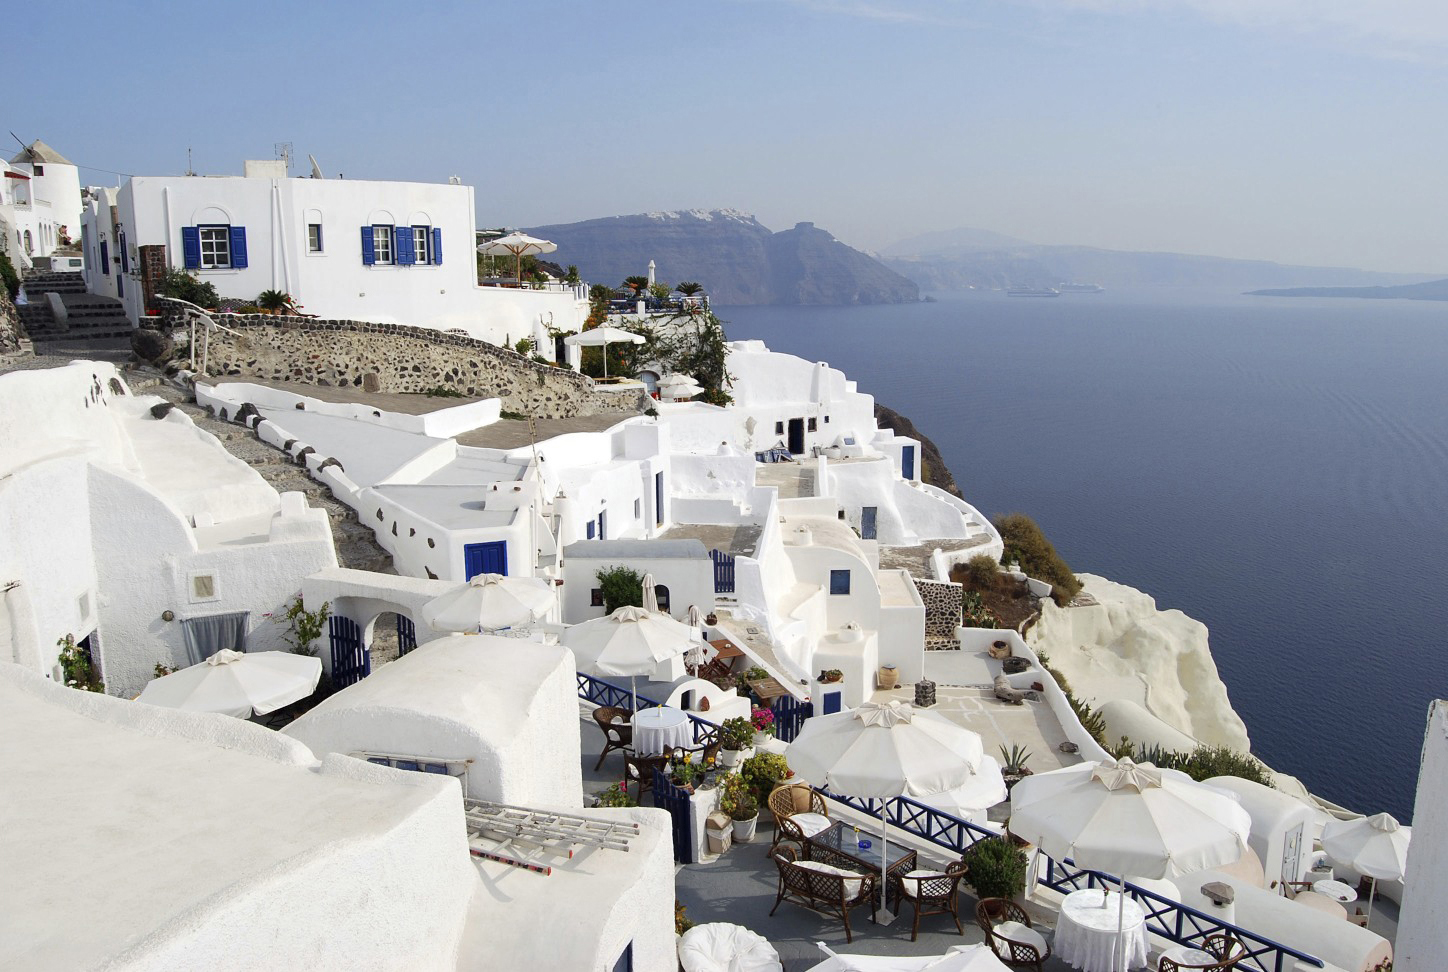 beautiful greece 2570 kalós – attractively good good that inspires (motivates) others to embrace what is lovely (beautiful, praiseworthy) ie well done so as to be winsome (appealing) nas exhaustive concordance word origin a prim word definition beautiful, good  thayer's greek lexicon.